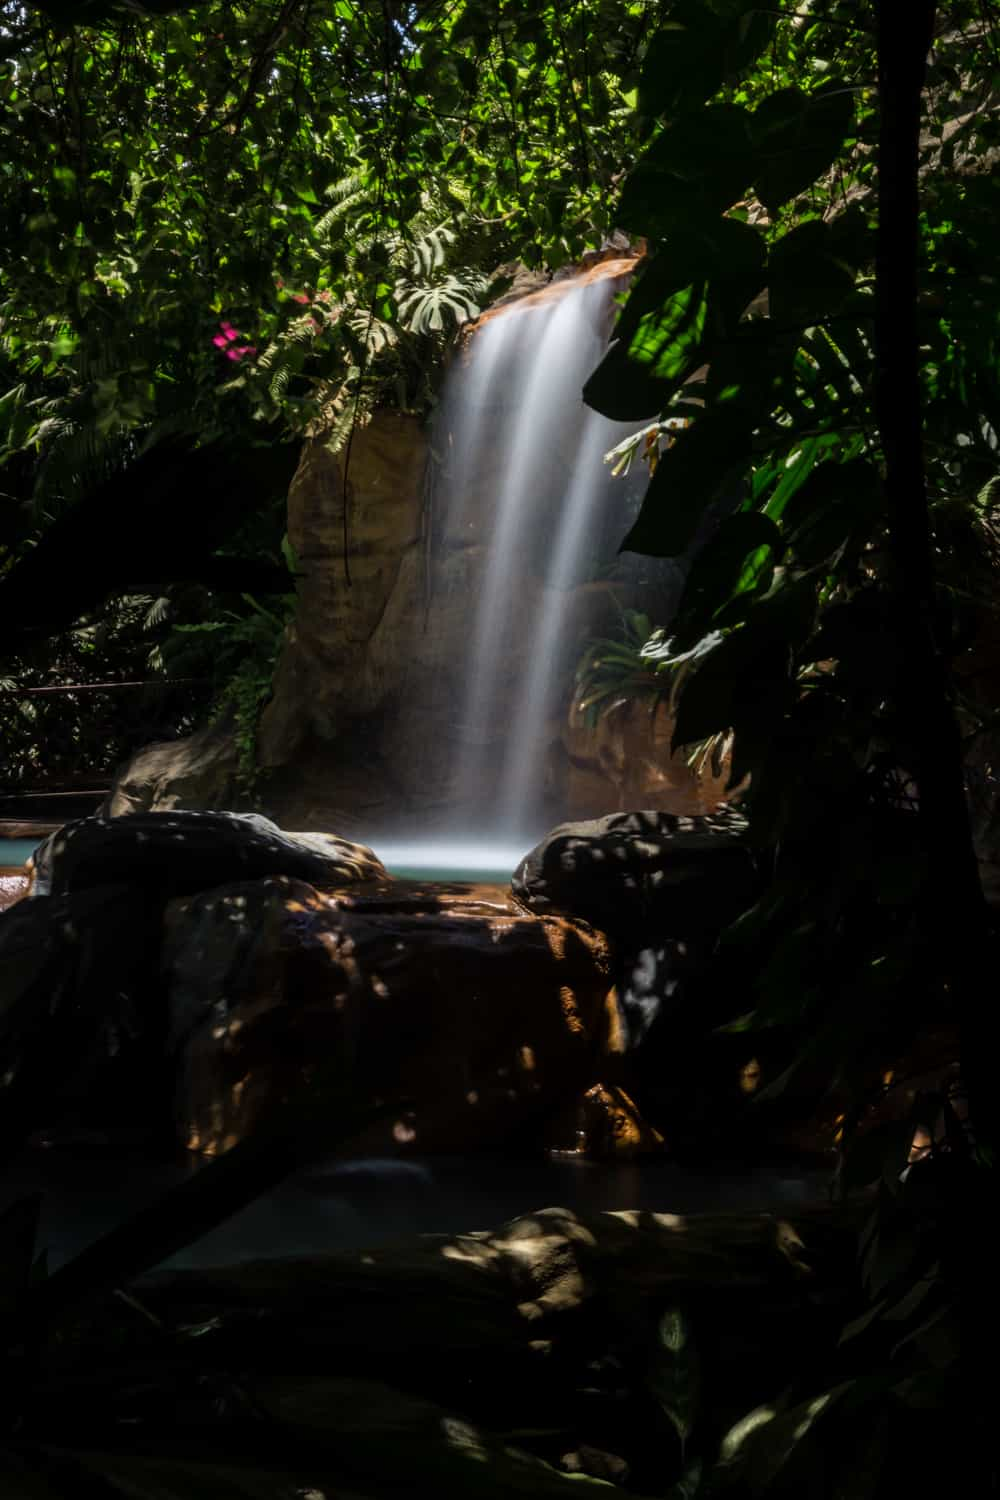 El Ranchito wedding & reception site has thermal pools with waterfalls.